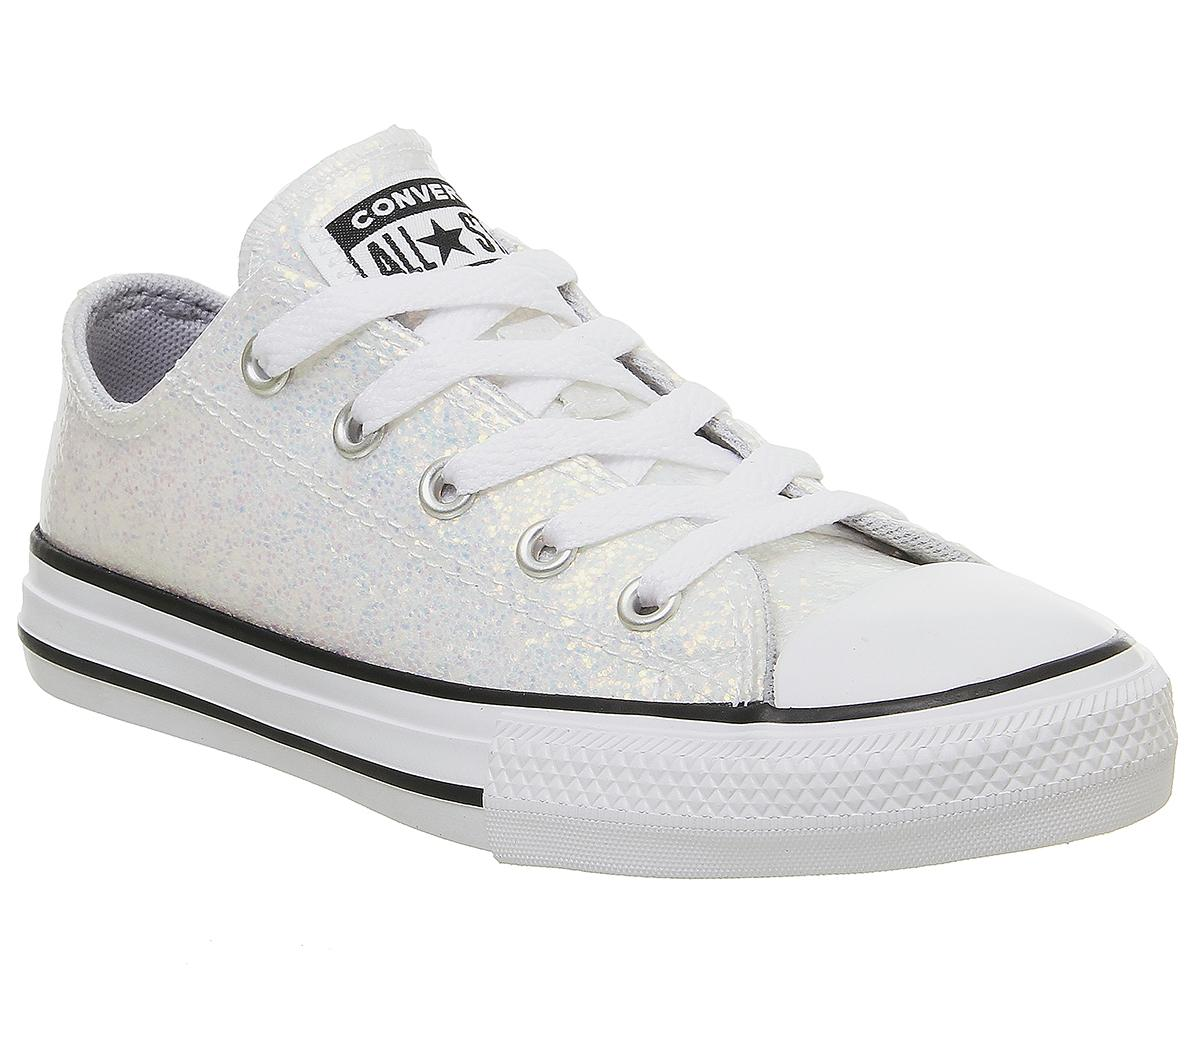 Converse All Star Low Youth Trainers